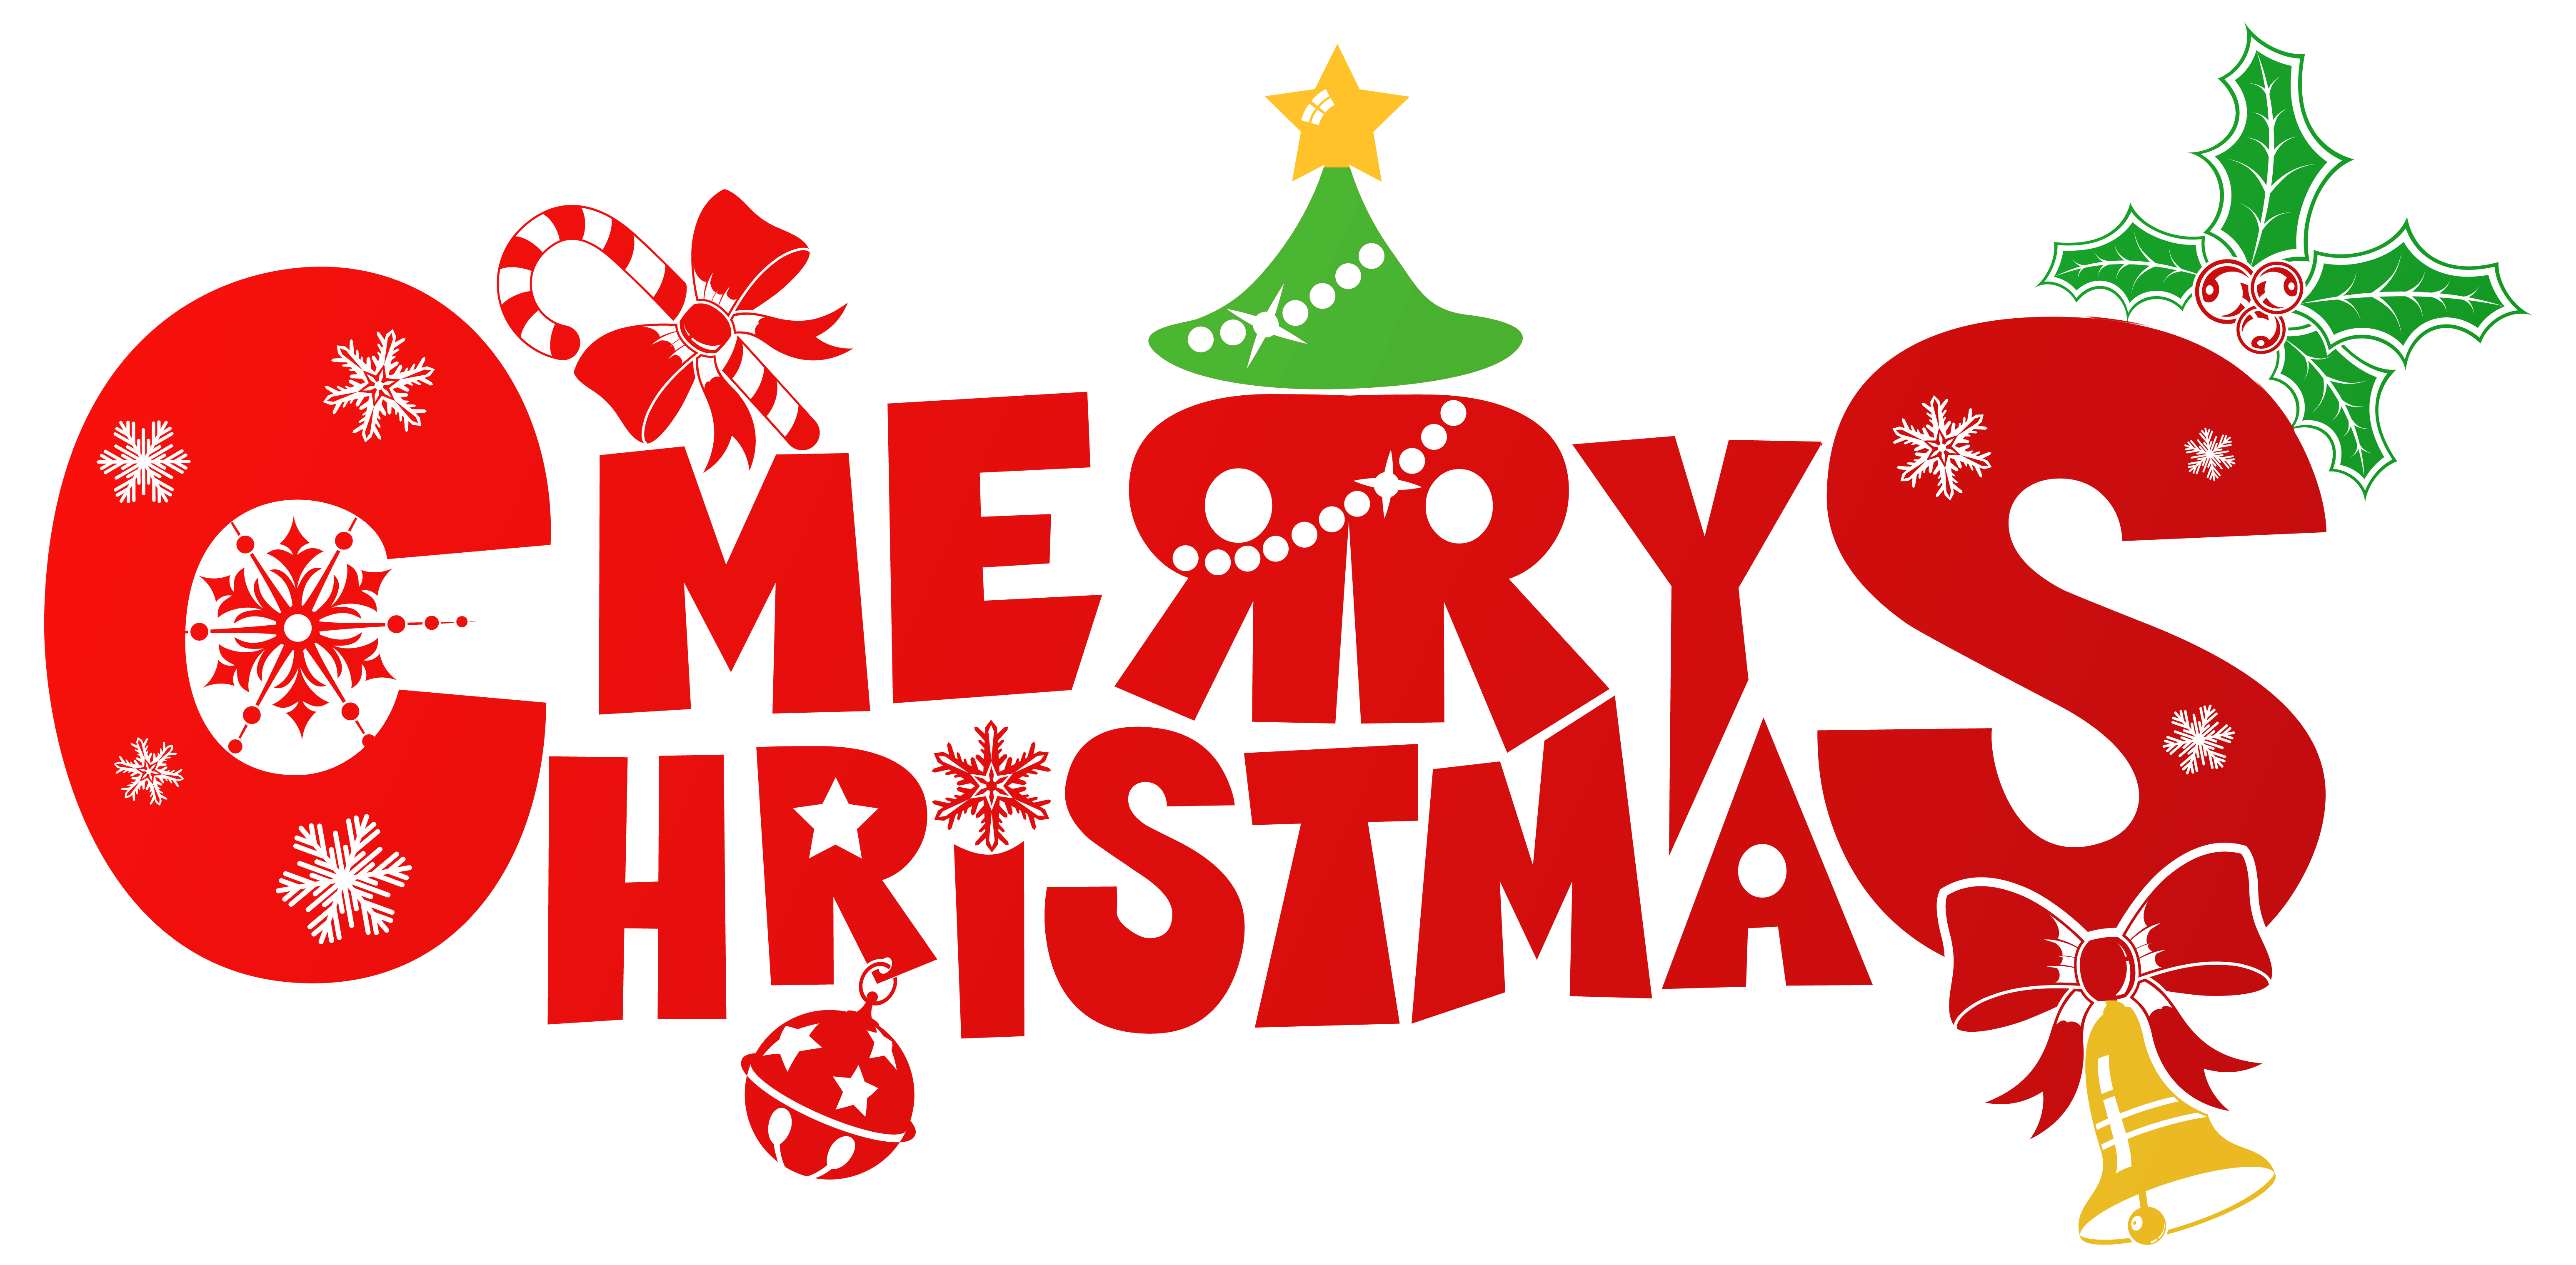 Red merry png image. Christmas clipart graphic download